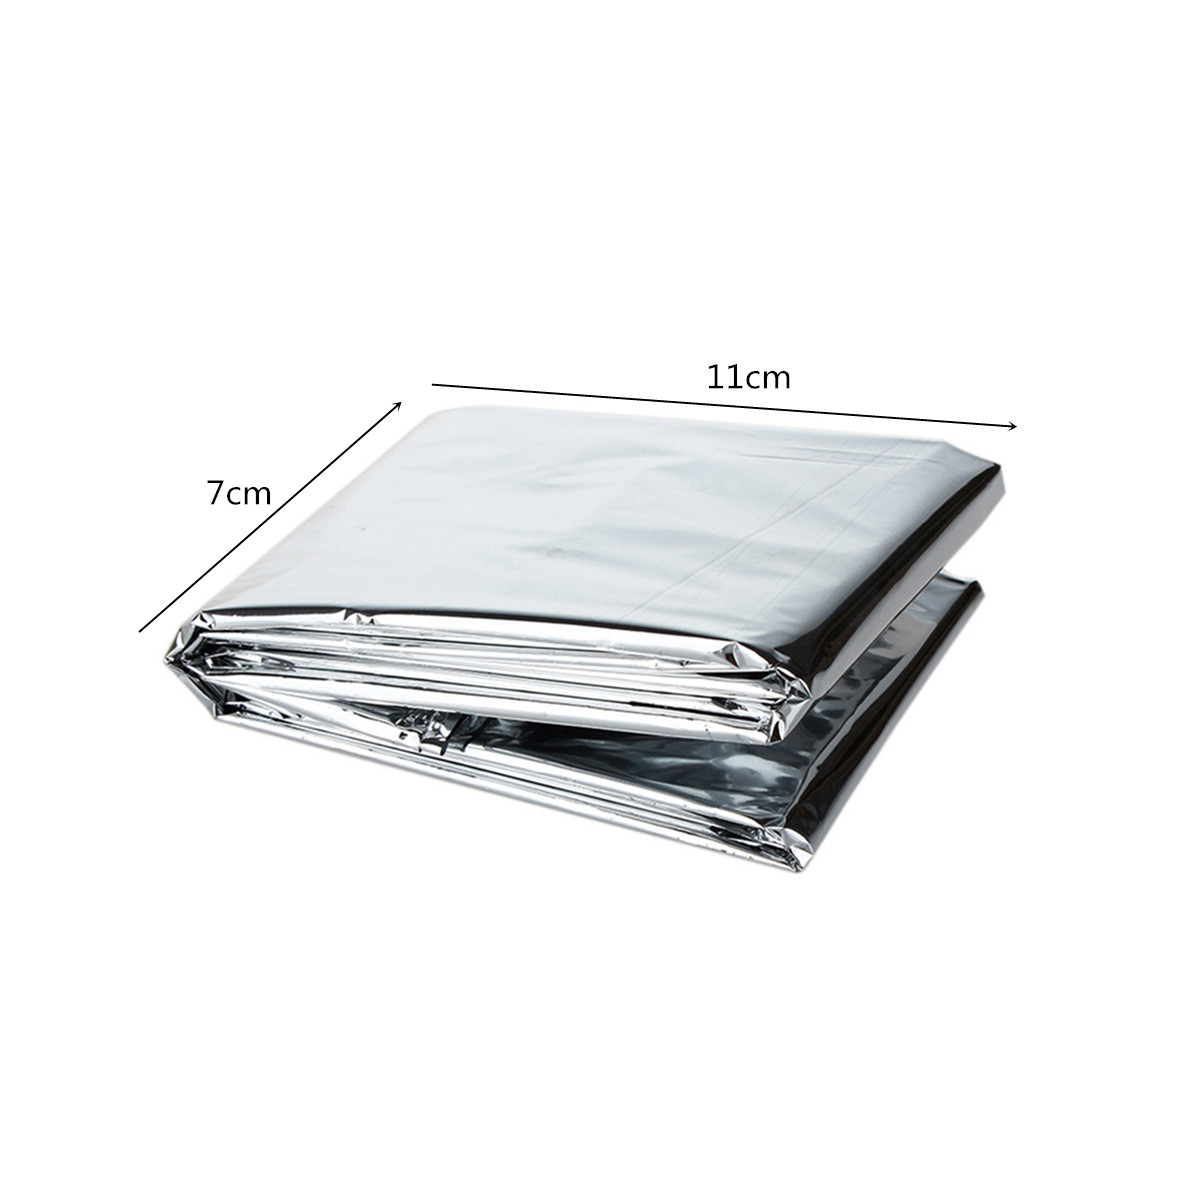 Waterproof Outdoor Survival Emergency Rescue First Aid Foil Thermal Blanket